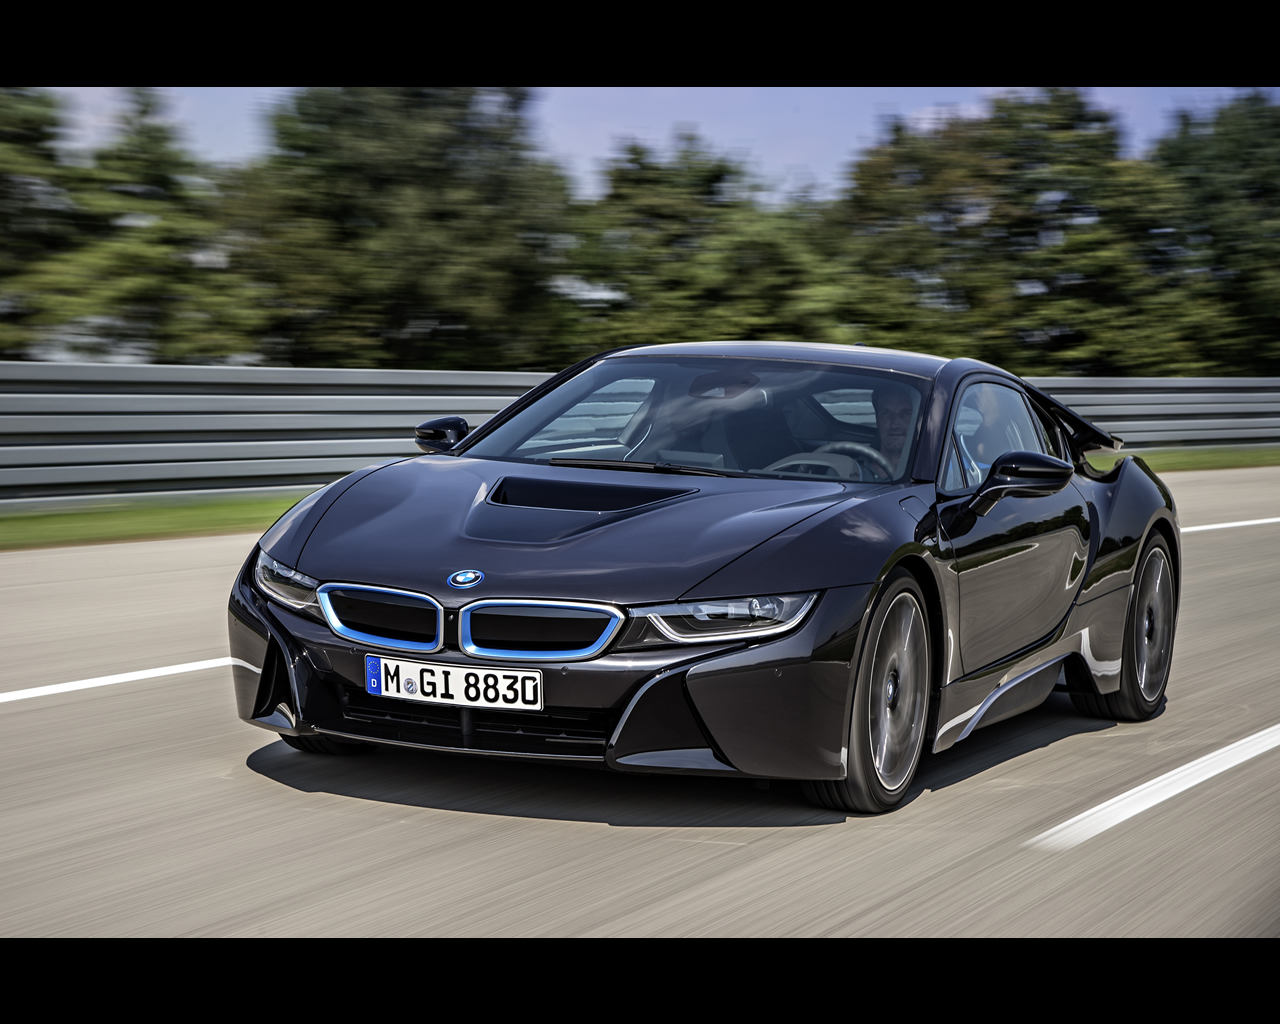 bmw i8 plug in hybrid sports car 2013. Black Bedroom Furniture Sets. Home Design Ideas